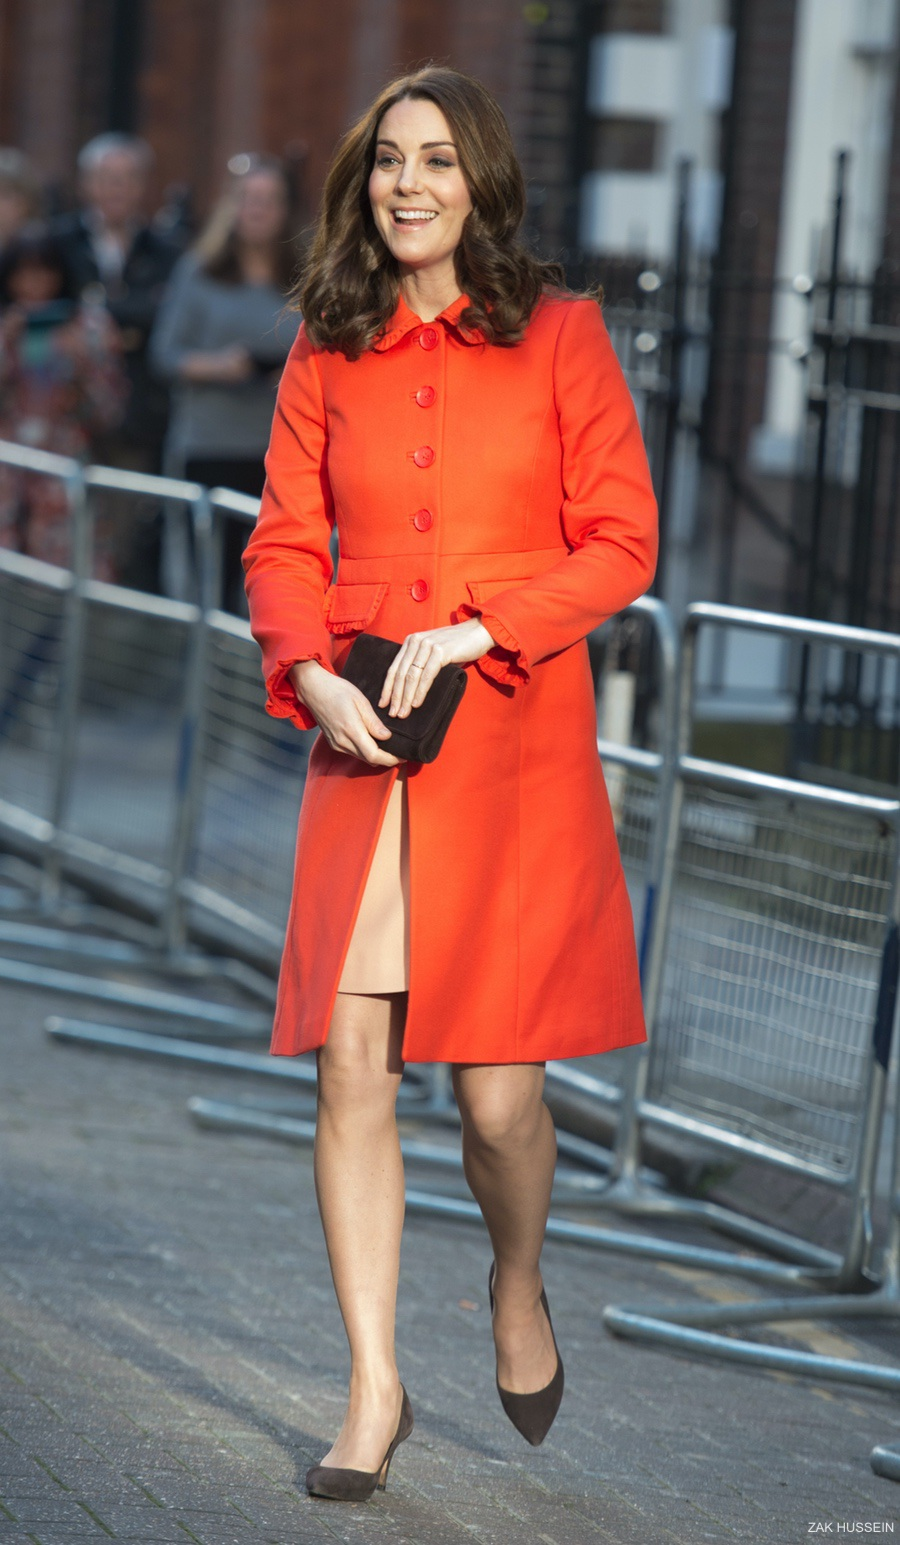 Kate Middleton wears Boden to Great Ormond Street Hospital